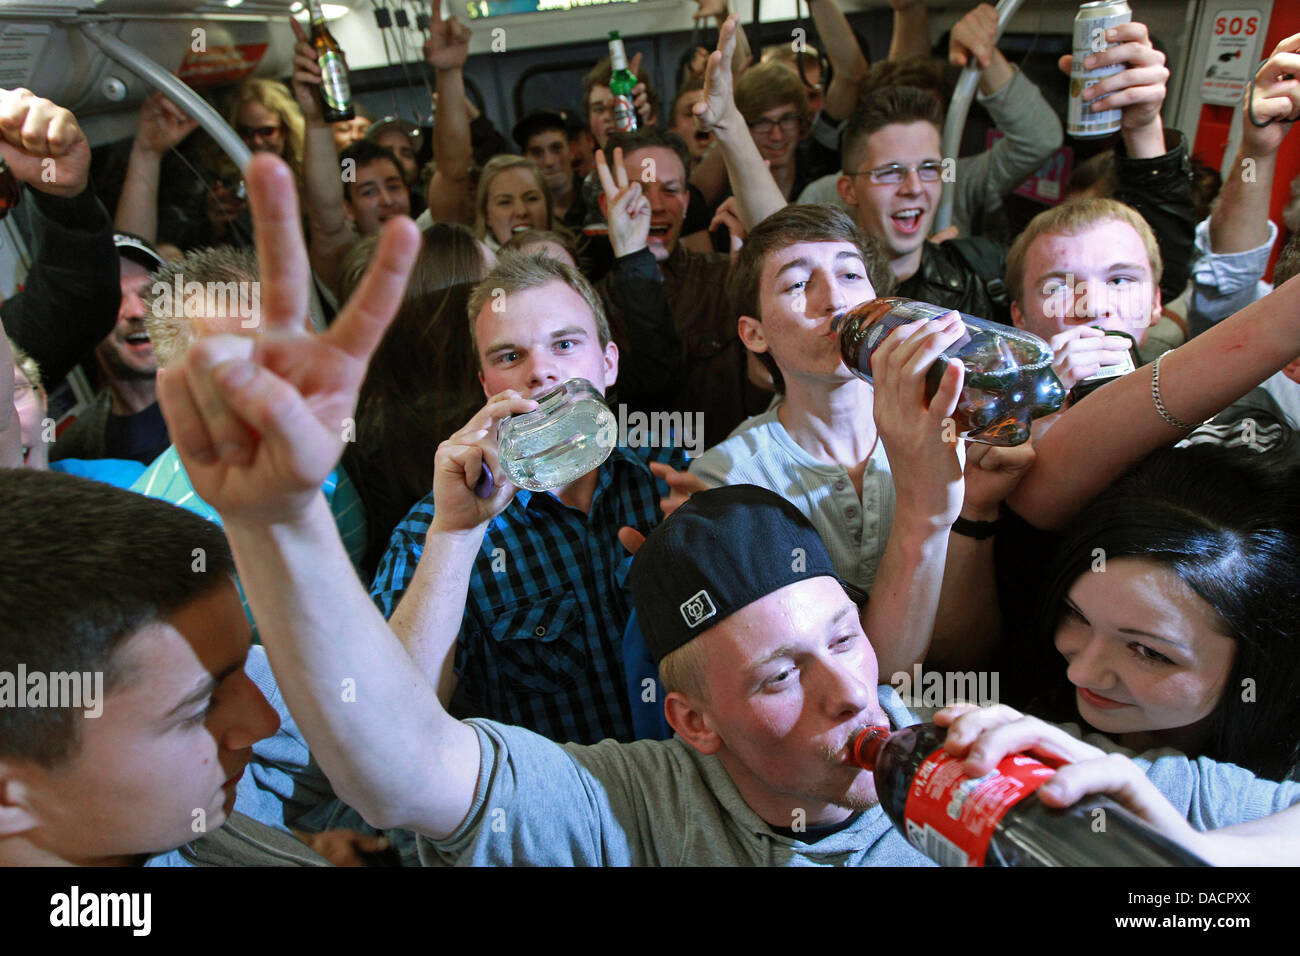 Adolescent celebrate during the so-called 'HVV farewell drinking' in the underground in Hamburg, germany, - Stock Image